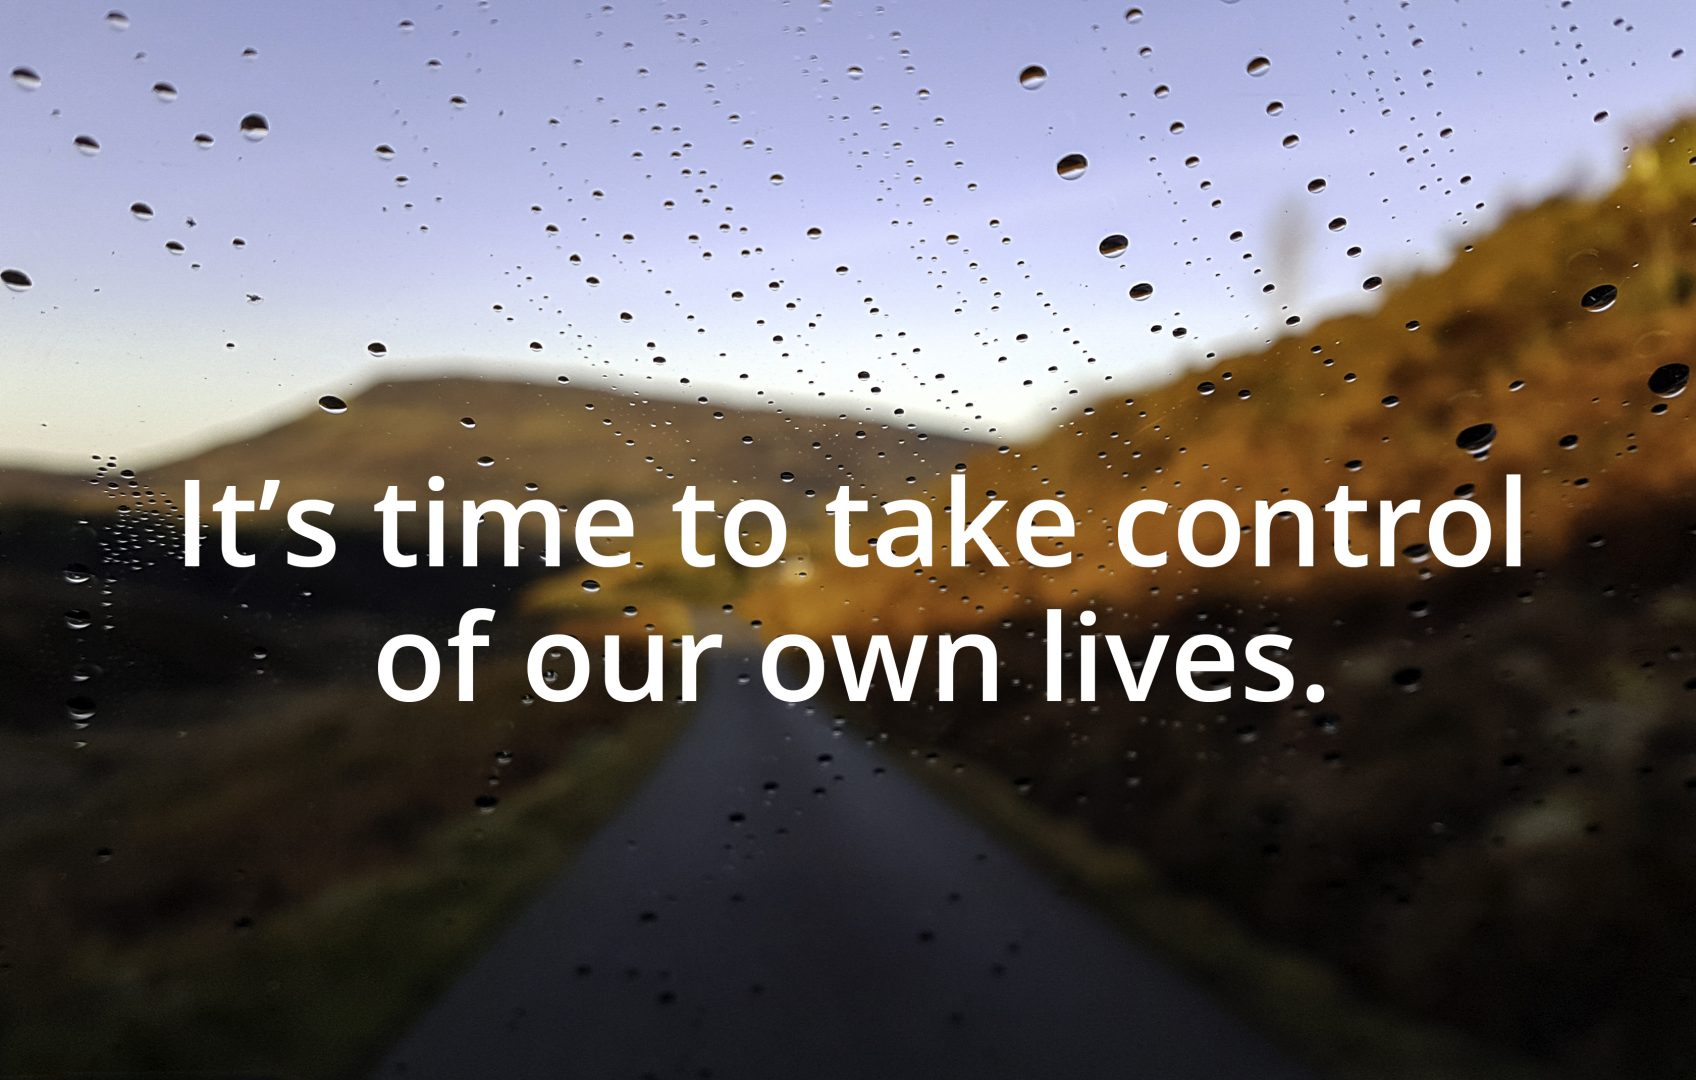 It's time to take control of our own lives.